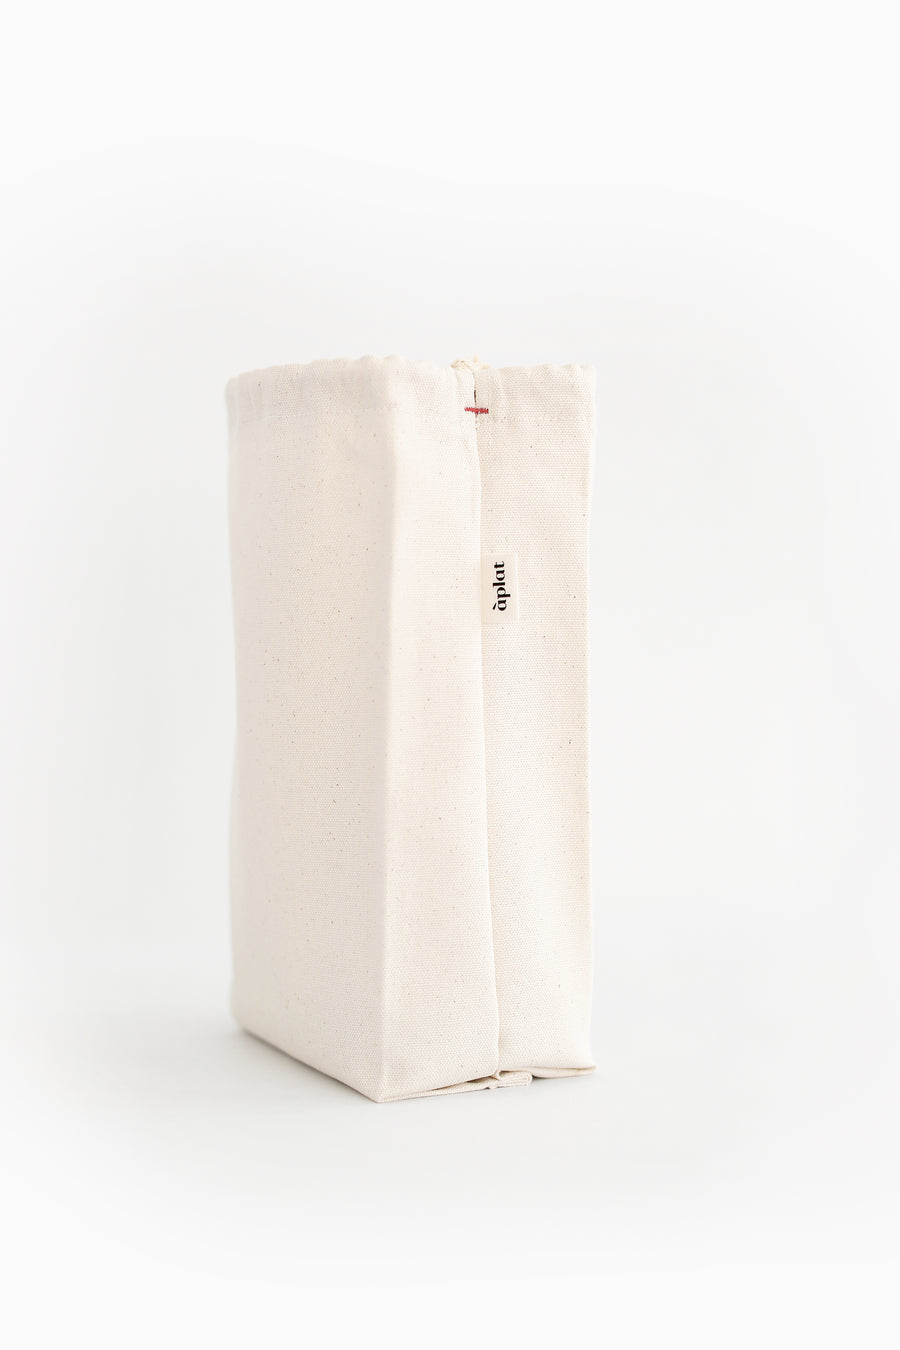 Poche Food Bags | Slightly Imperfect - Aplat